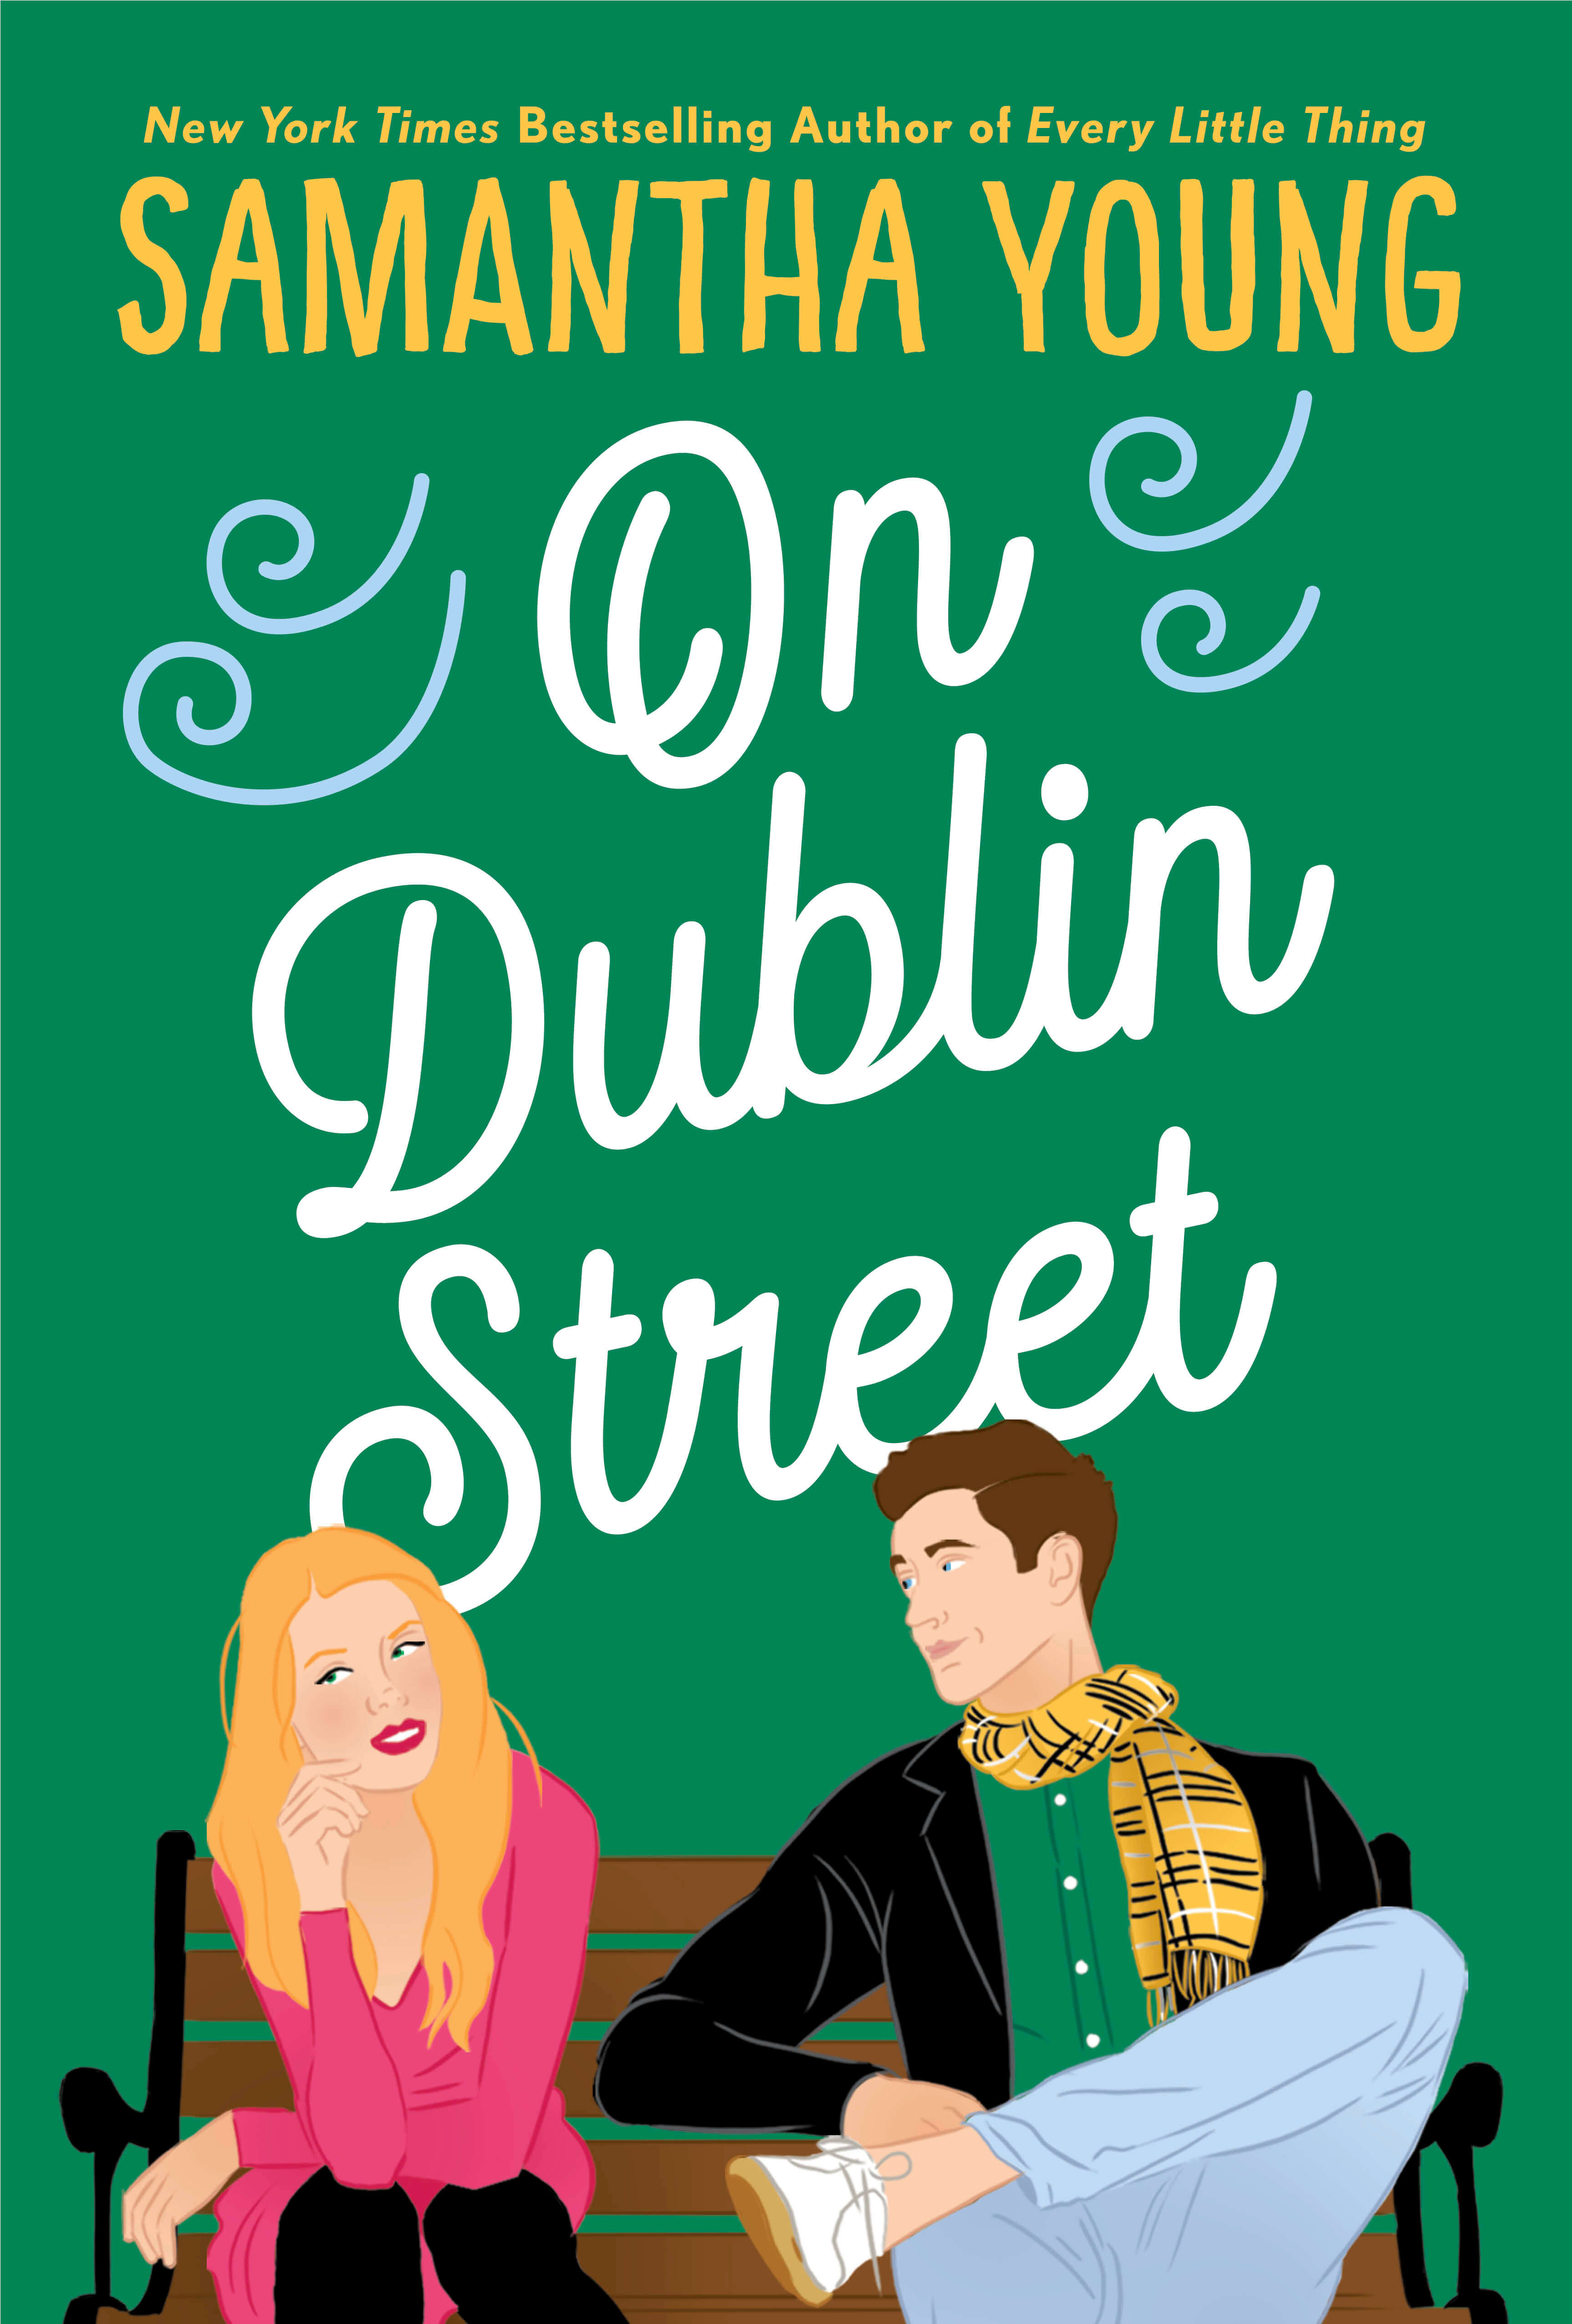 New Cover Reveal * On Dublin Street by Samantha Young * Chapter 1 Reveal * and Coming Soon * Flight or Fight b y Samantha Young *